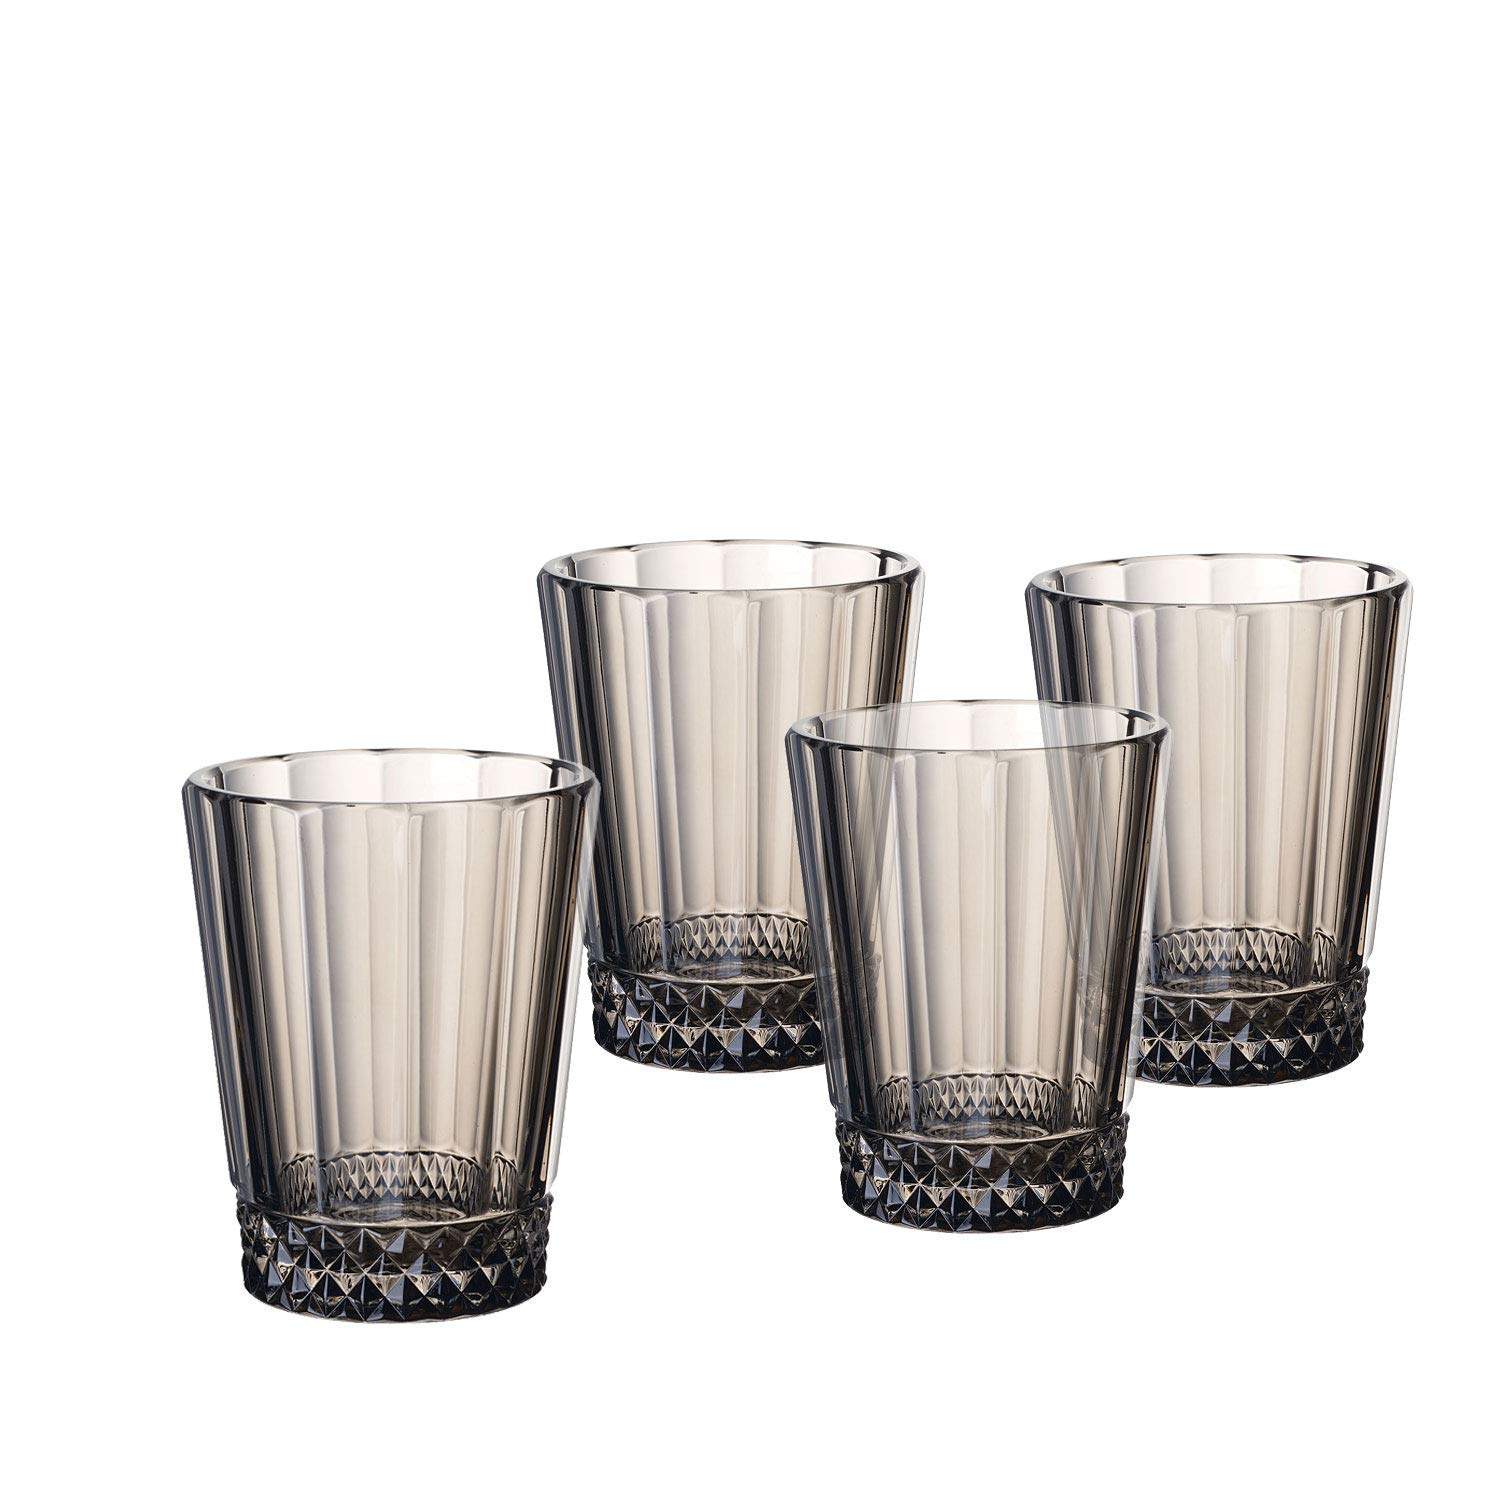 Villeroy & Boch 1137908140 Opera Smoke Water/Juice Glass : Set of 4, 4.25 in/10.5 oz, Clear/Gray by Villeroy & Boch